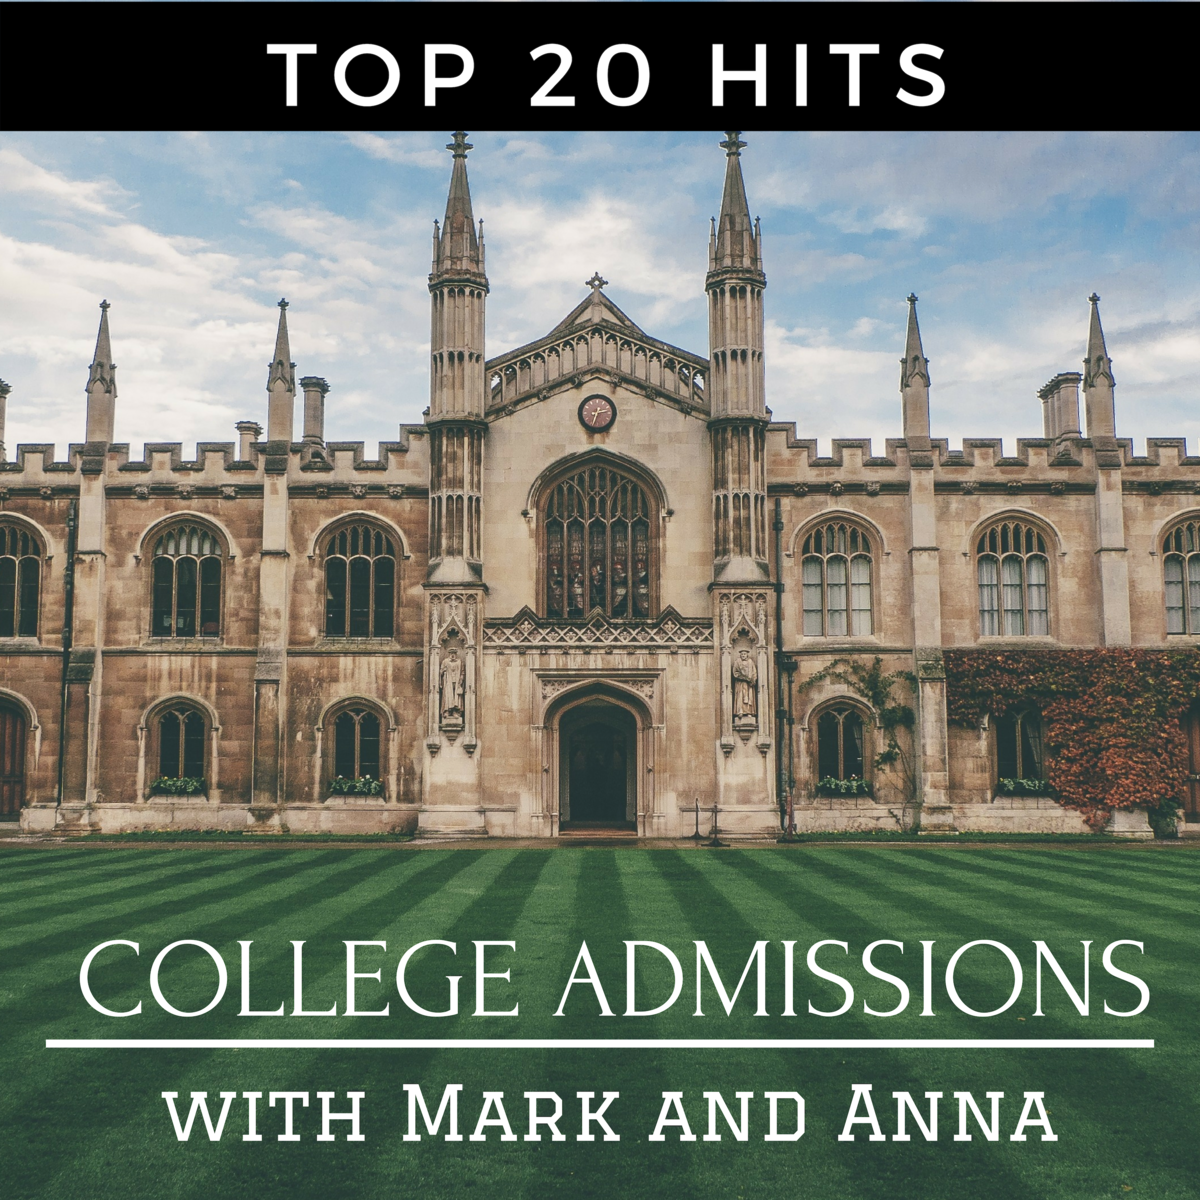 Top Hits: 20 Best College Admissions Episodes